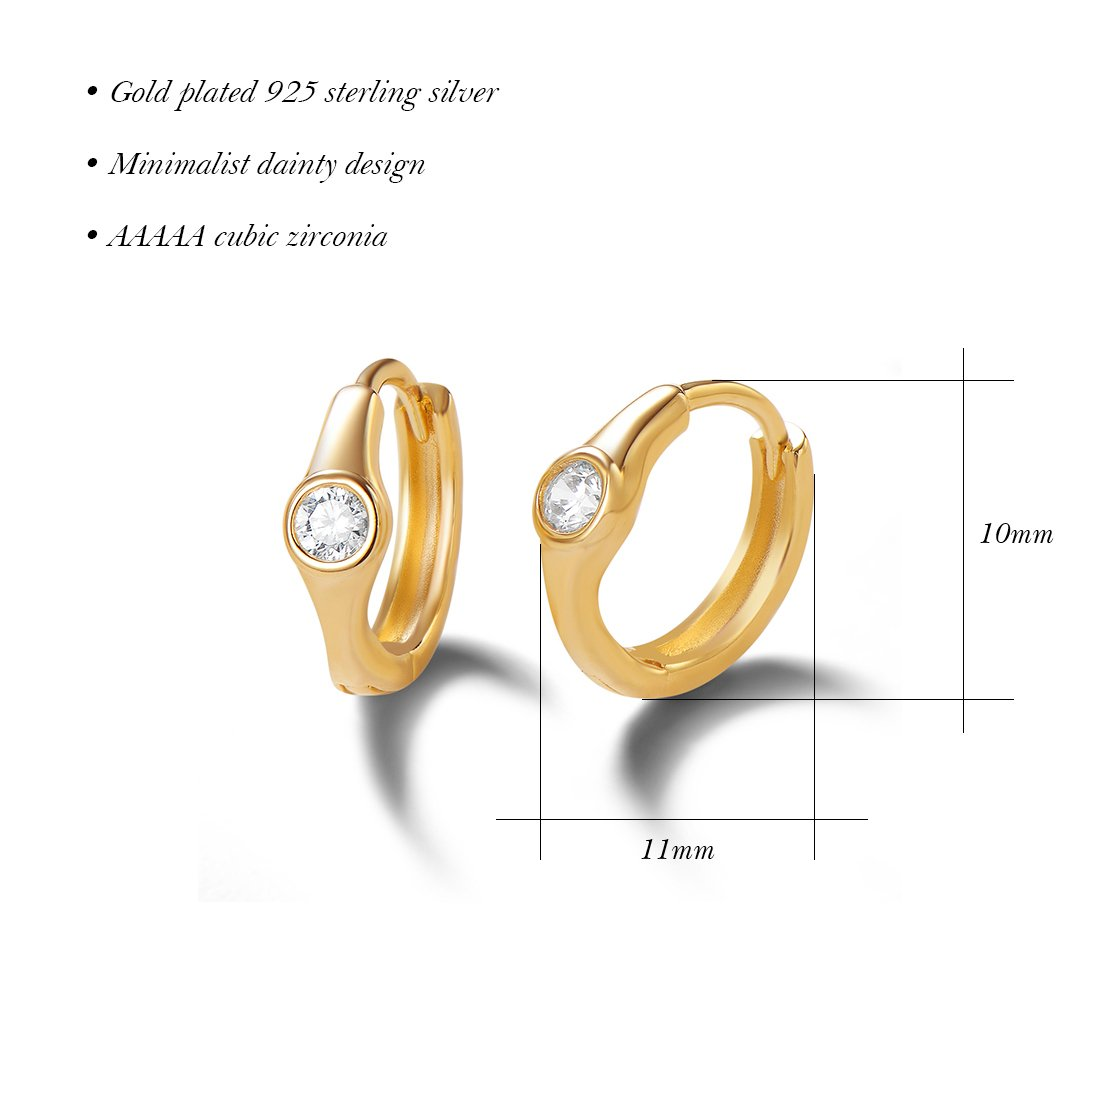 Carleen 14K Yellow Gold Plated 925 Sterling Silver Round Cut Cubic Zirconia CZ Dainty Hinged Hoop Earrings for Women Girls, 11x10mm by Carleen (Image #4)